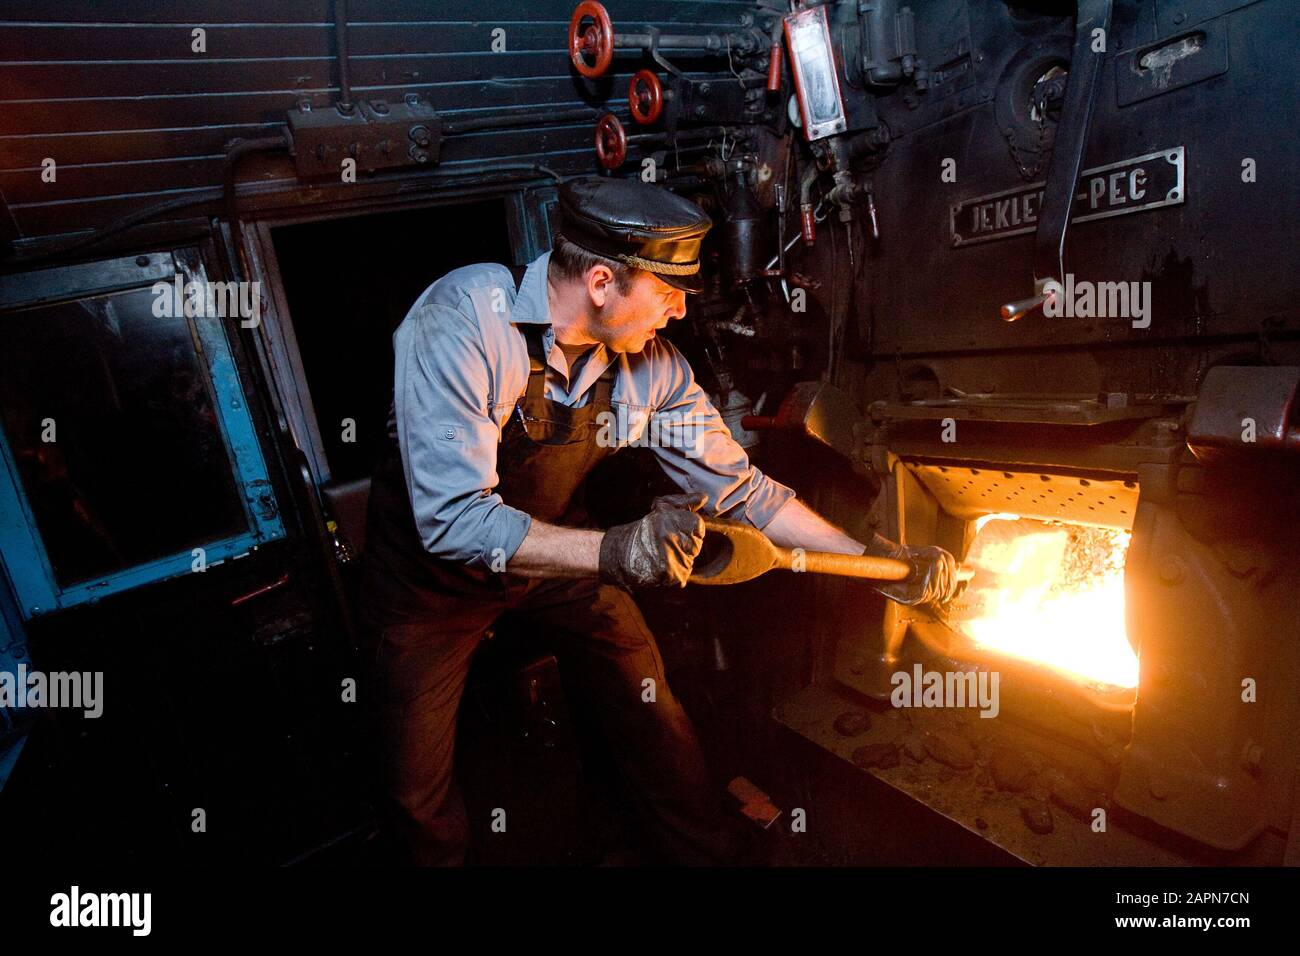 Most na Soči, Slovenia, October 4, 2008: A stoker shovels coal into the furnace of a 1944 Henschel & Son German steam engine that pulls an old museum train on the Bohinj railway line (Transalpina) built from 1900 to 1906 as the shortest connection of the Austro-Hungarian Empire with the Adriatic Sea in Trieste (Italy). Stock Photo